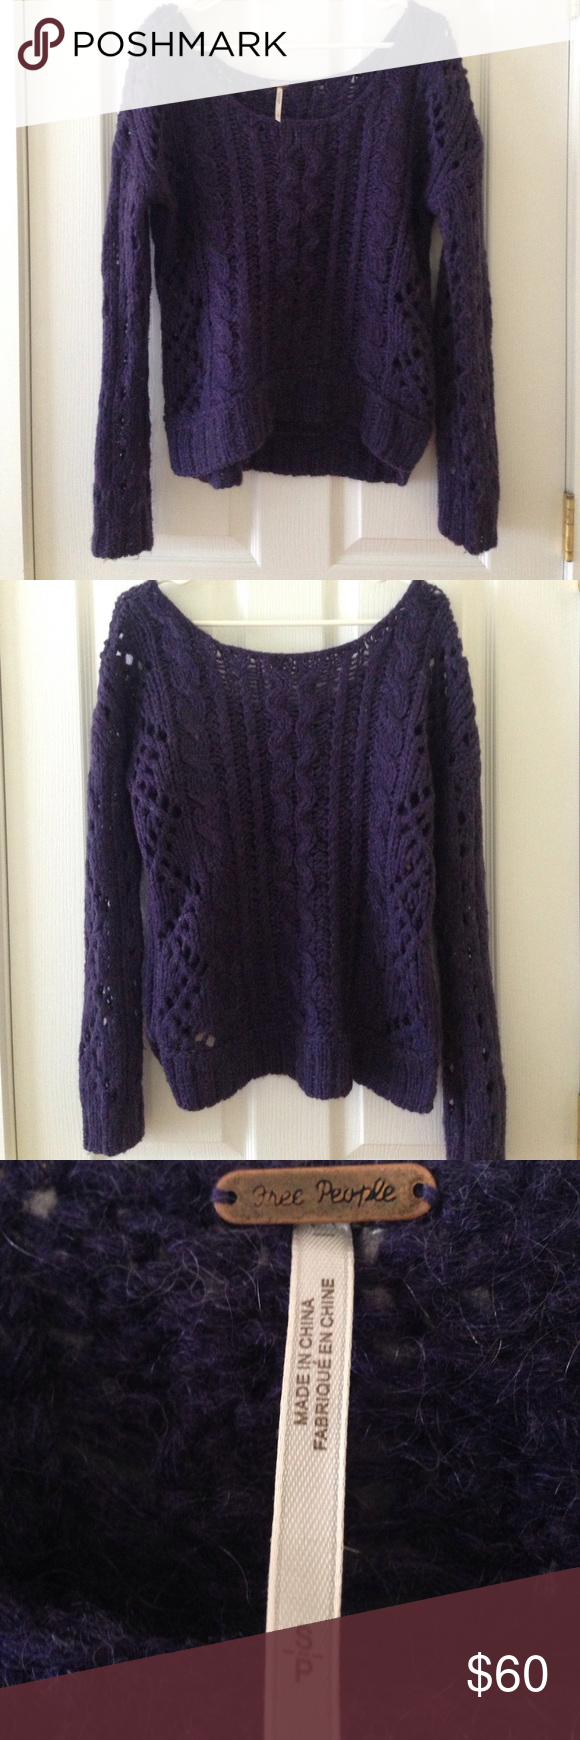 Purple Free People Sweater | Deep purple color, Deep purple and ...